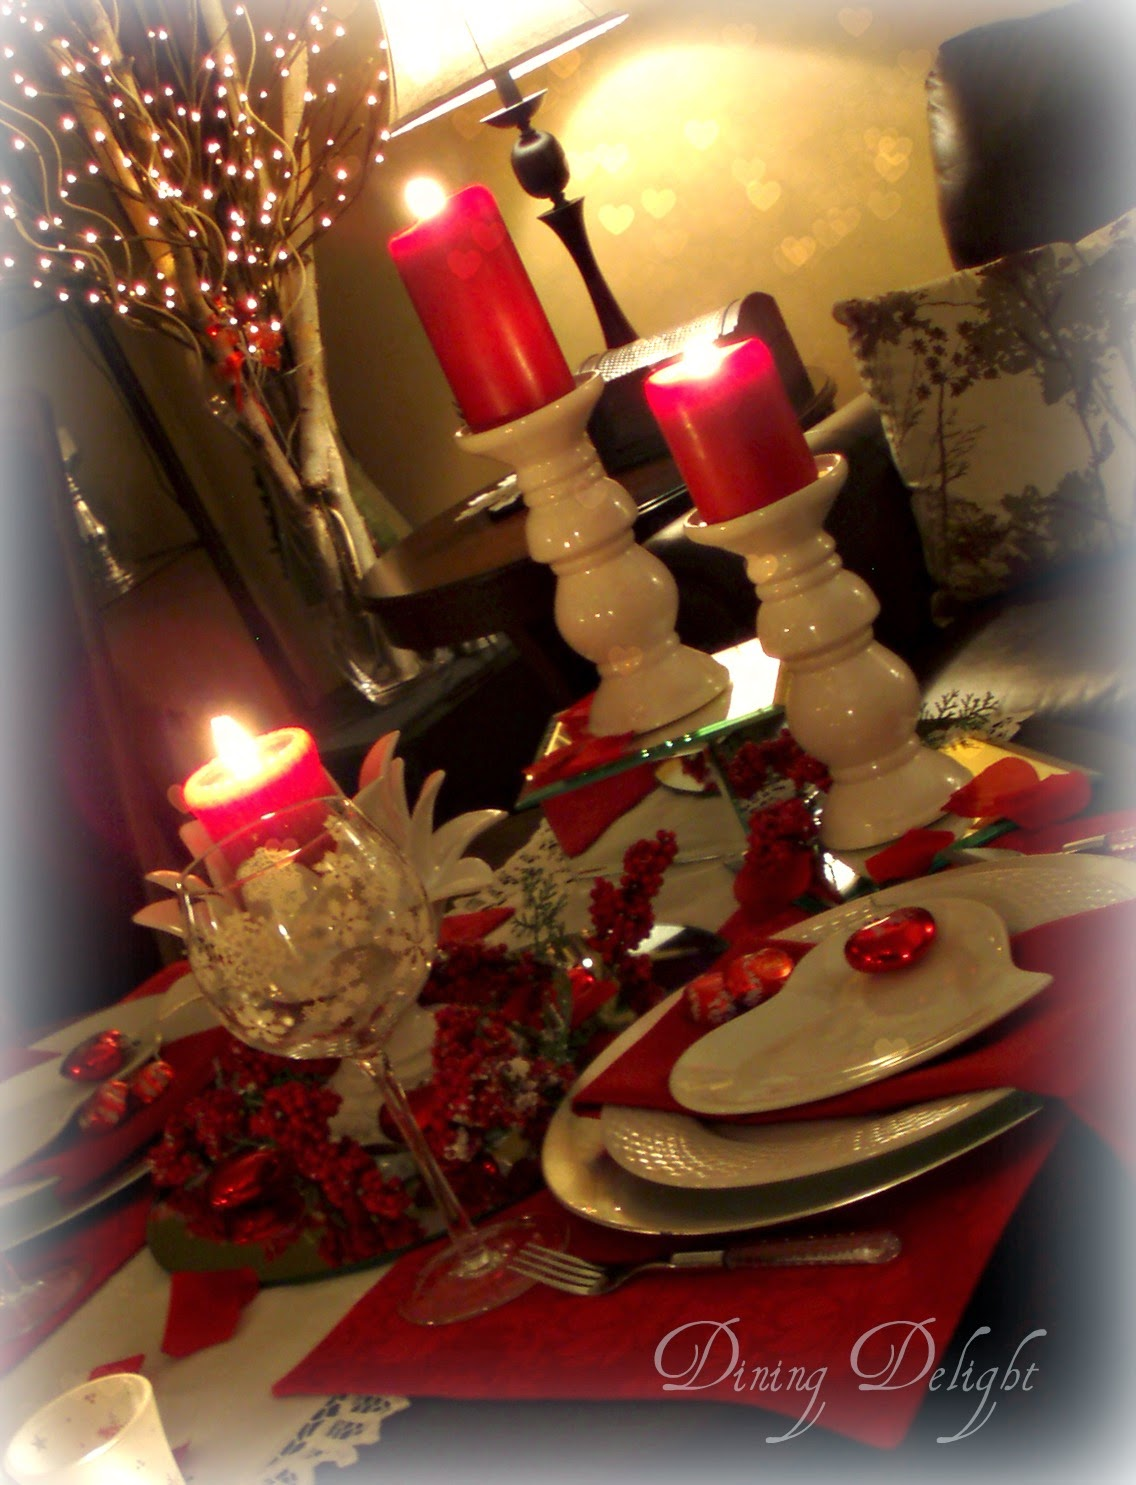 Romantic Dinner For Two Recipes: Dining Delight: Valentine Apres Ski Table For Two